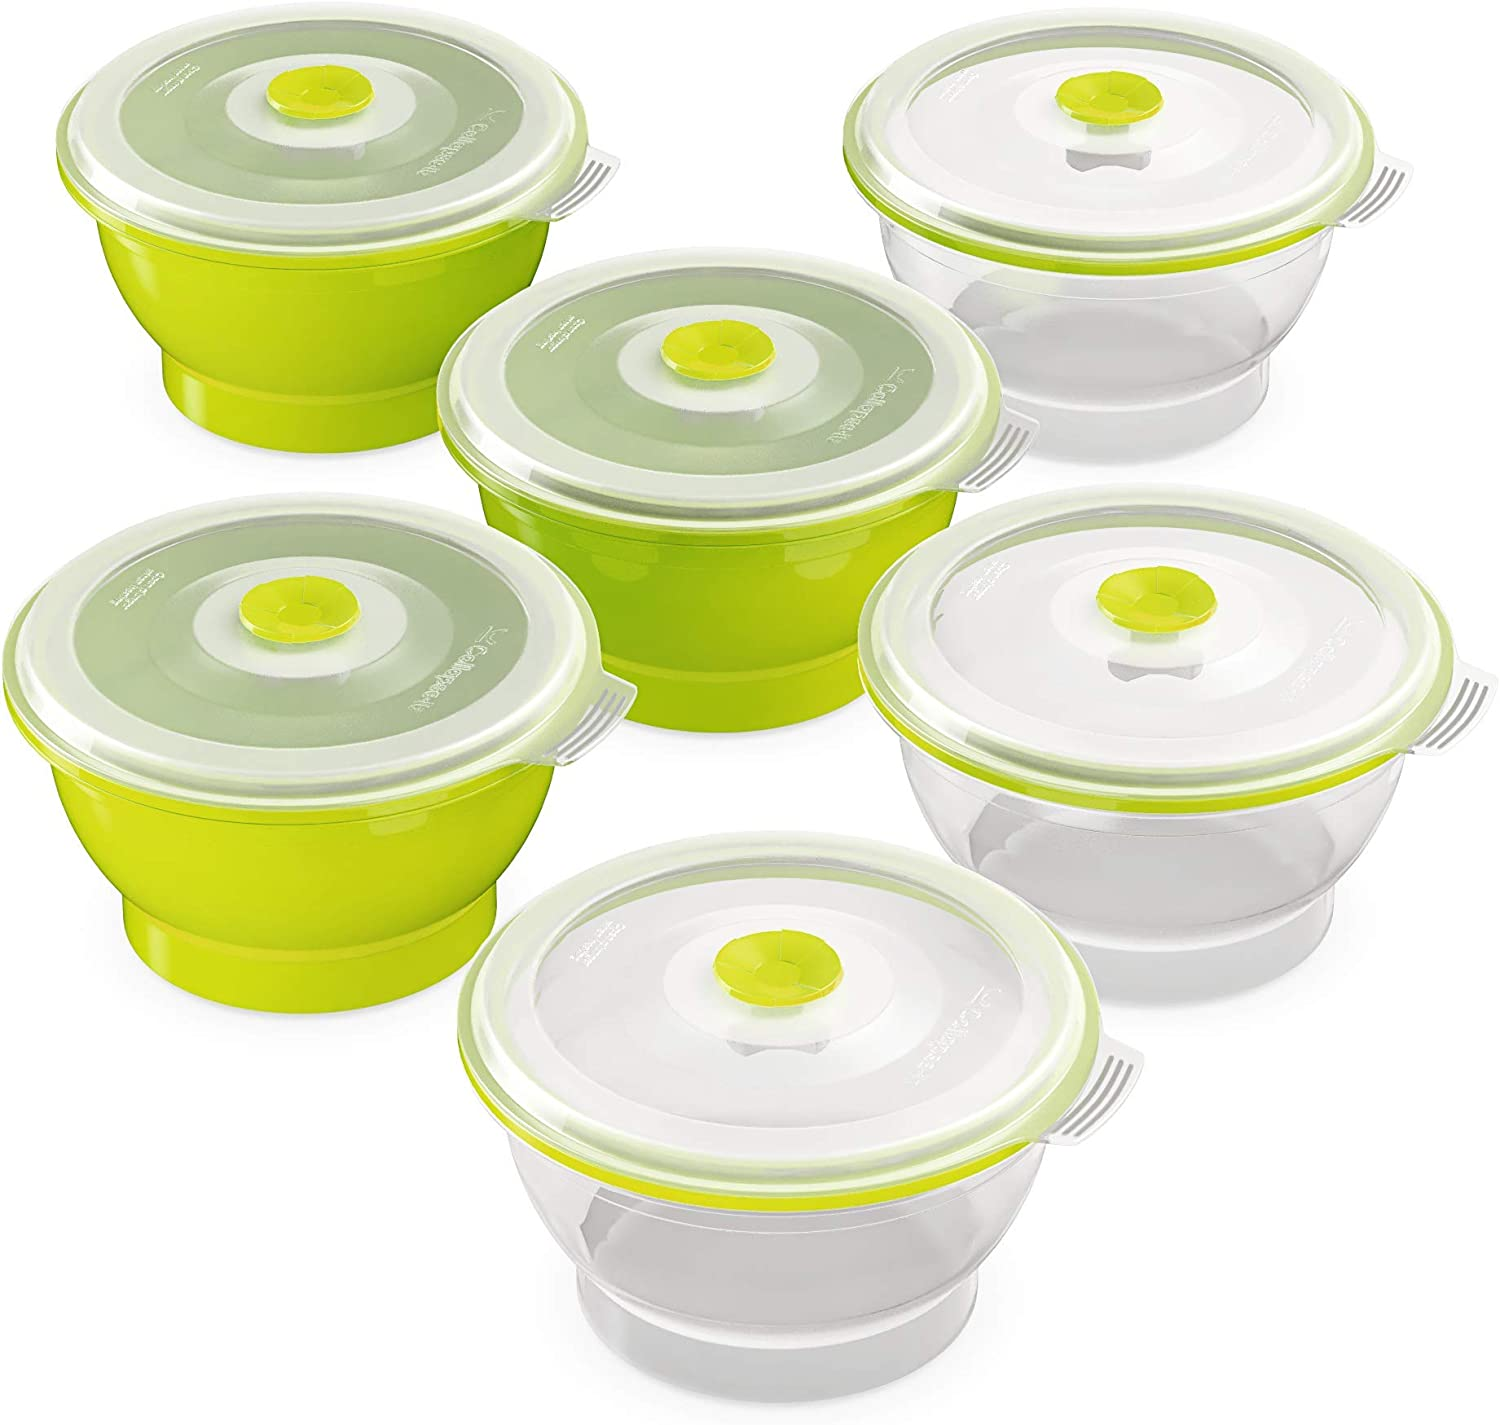 Collapse-it Silicone Food Storage Containers - BPA Free Airtight Silicone Lids Collapsible Lunch Box Containers - Oven, Microwave, Freezer Safe (Green (6) 1-Cup Set)